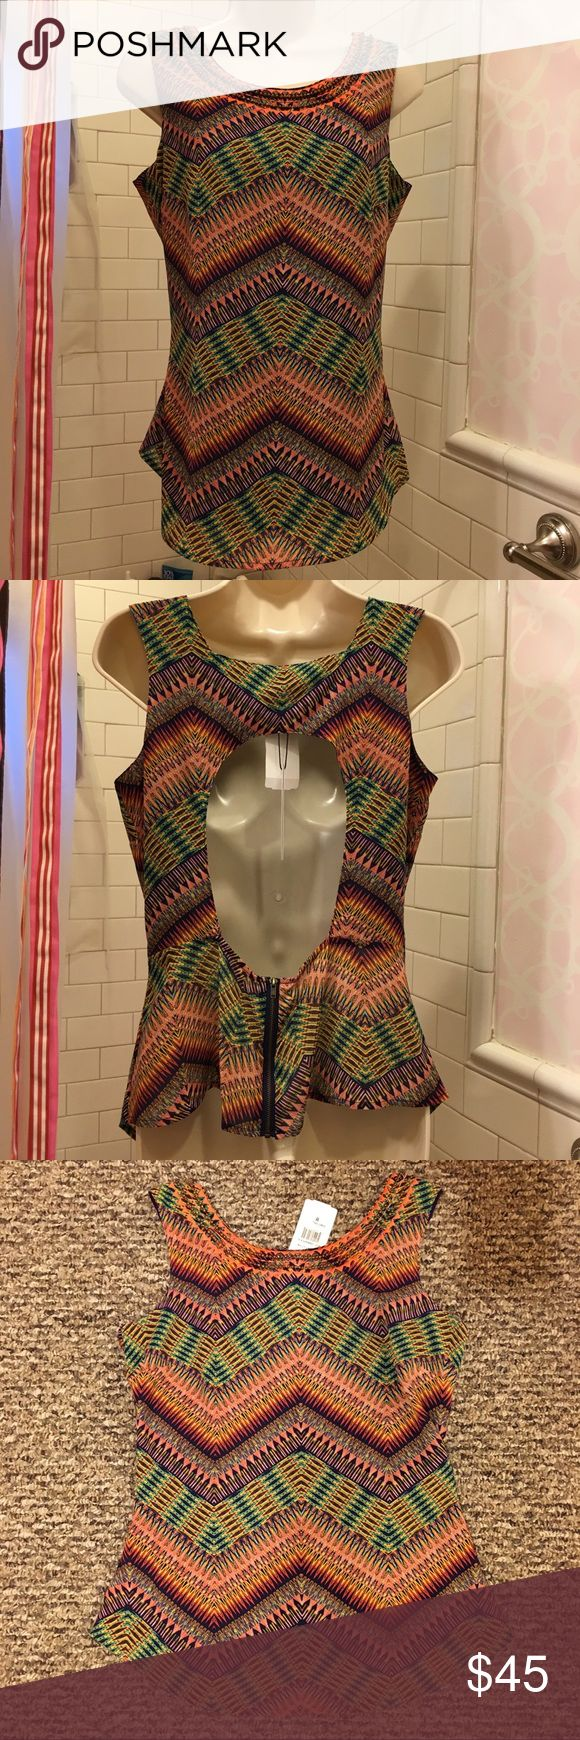 "Sanctuary Sunset Shell Chevron Top Shirt Blouse M Here is a new with tags ""sunset shell"" by Sanctuary. It is a beautiful, very colorful chevron print top with an open back design. It has a beaded neckline and zipper in the back. It is a size M- measurements as shown in pictures. Sanctuary Tops Blouses"